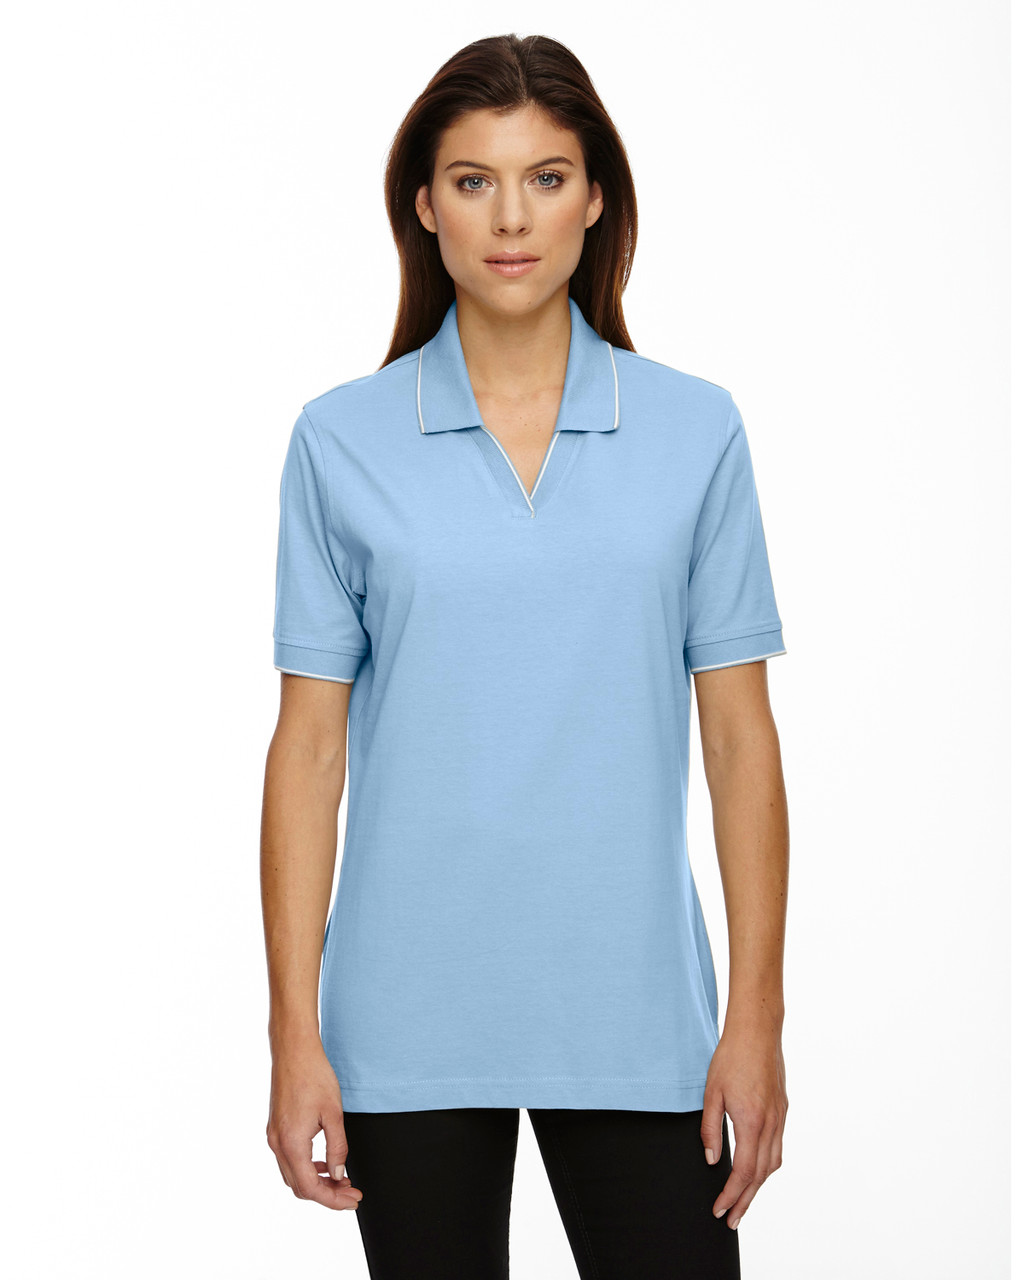 Powder Blue - 75009 Extreme Ladies' Cotton Jersey Polo | BlankClothing.ca